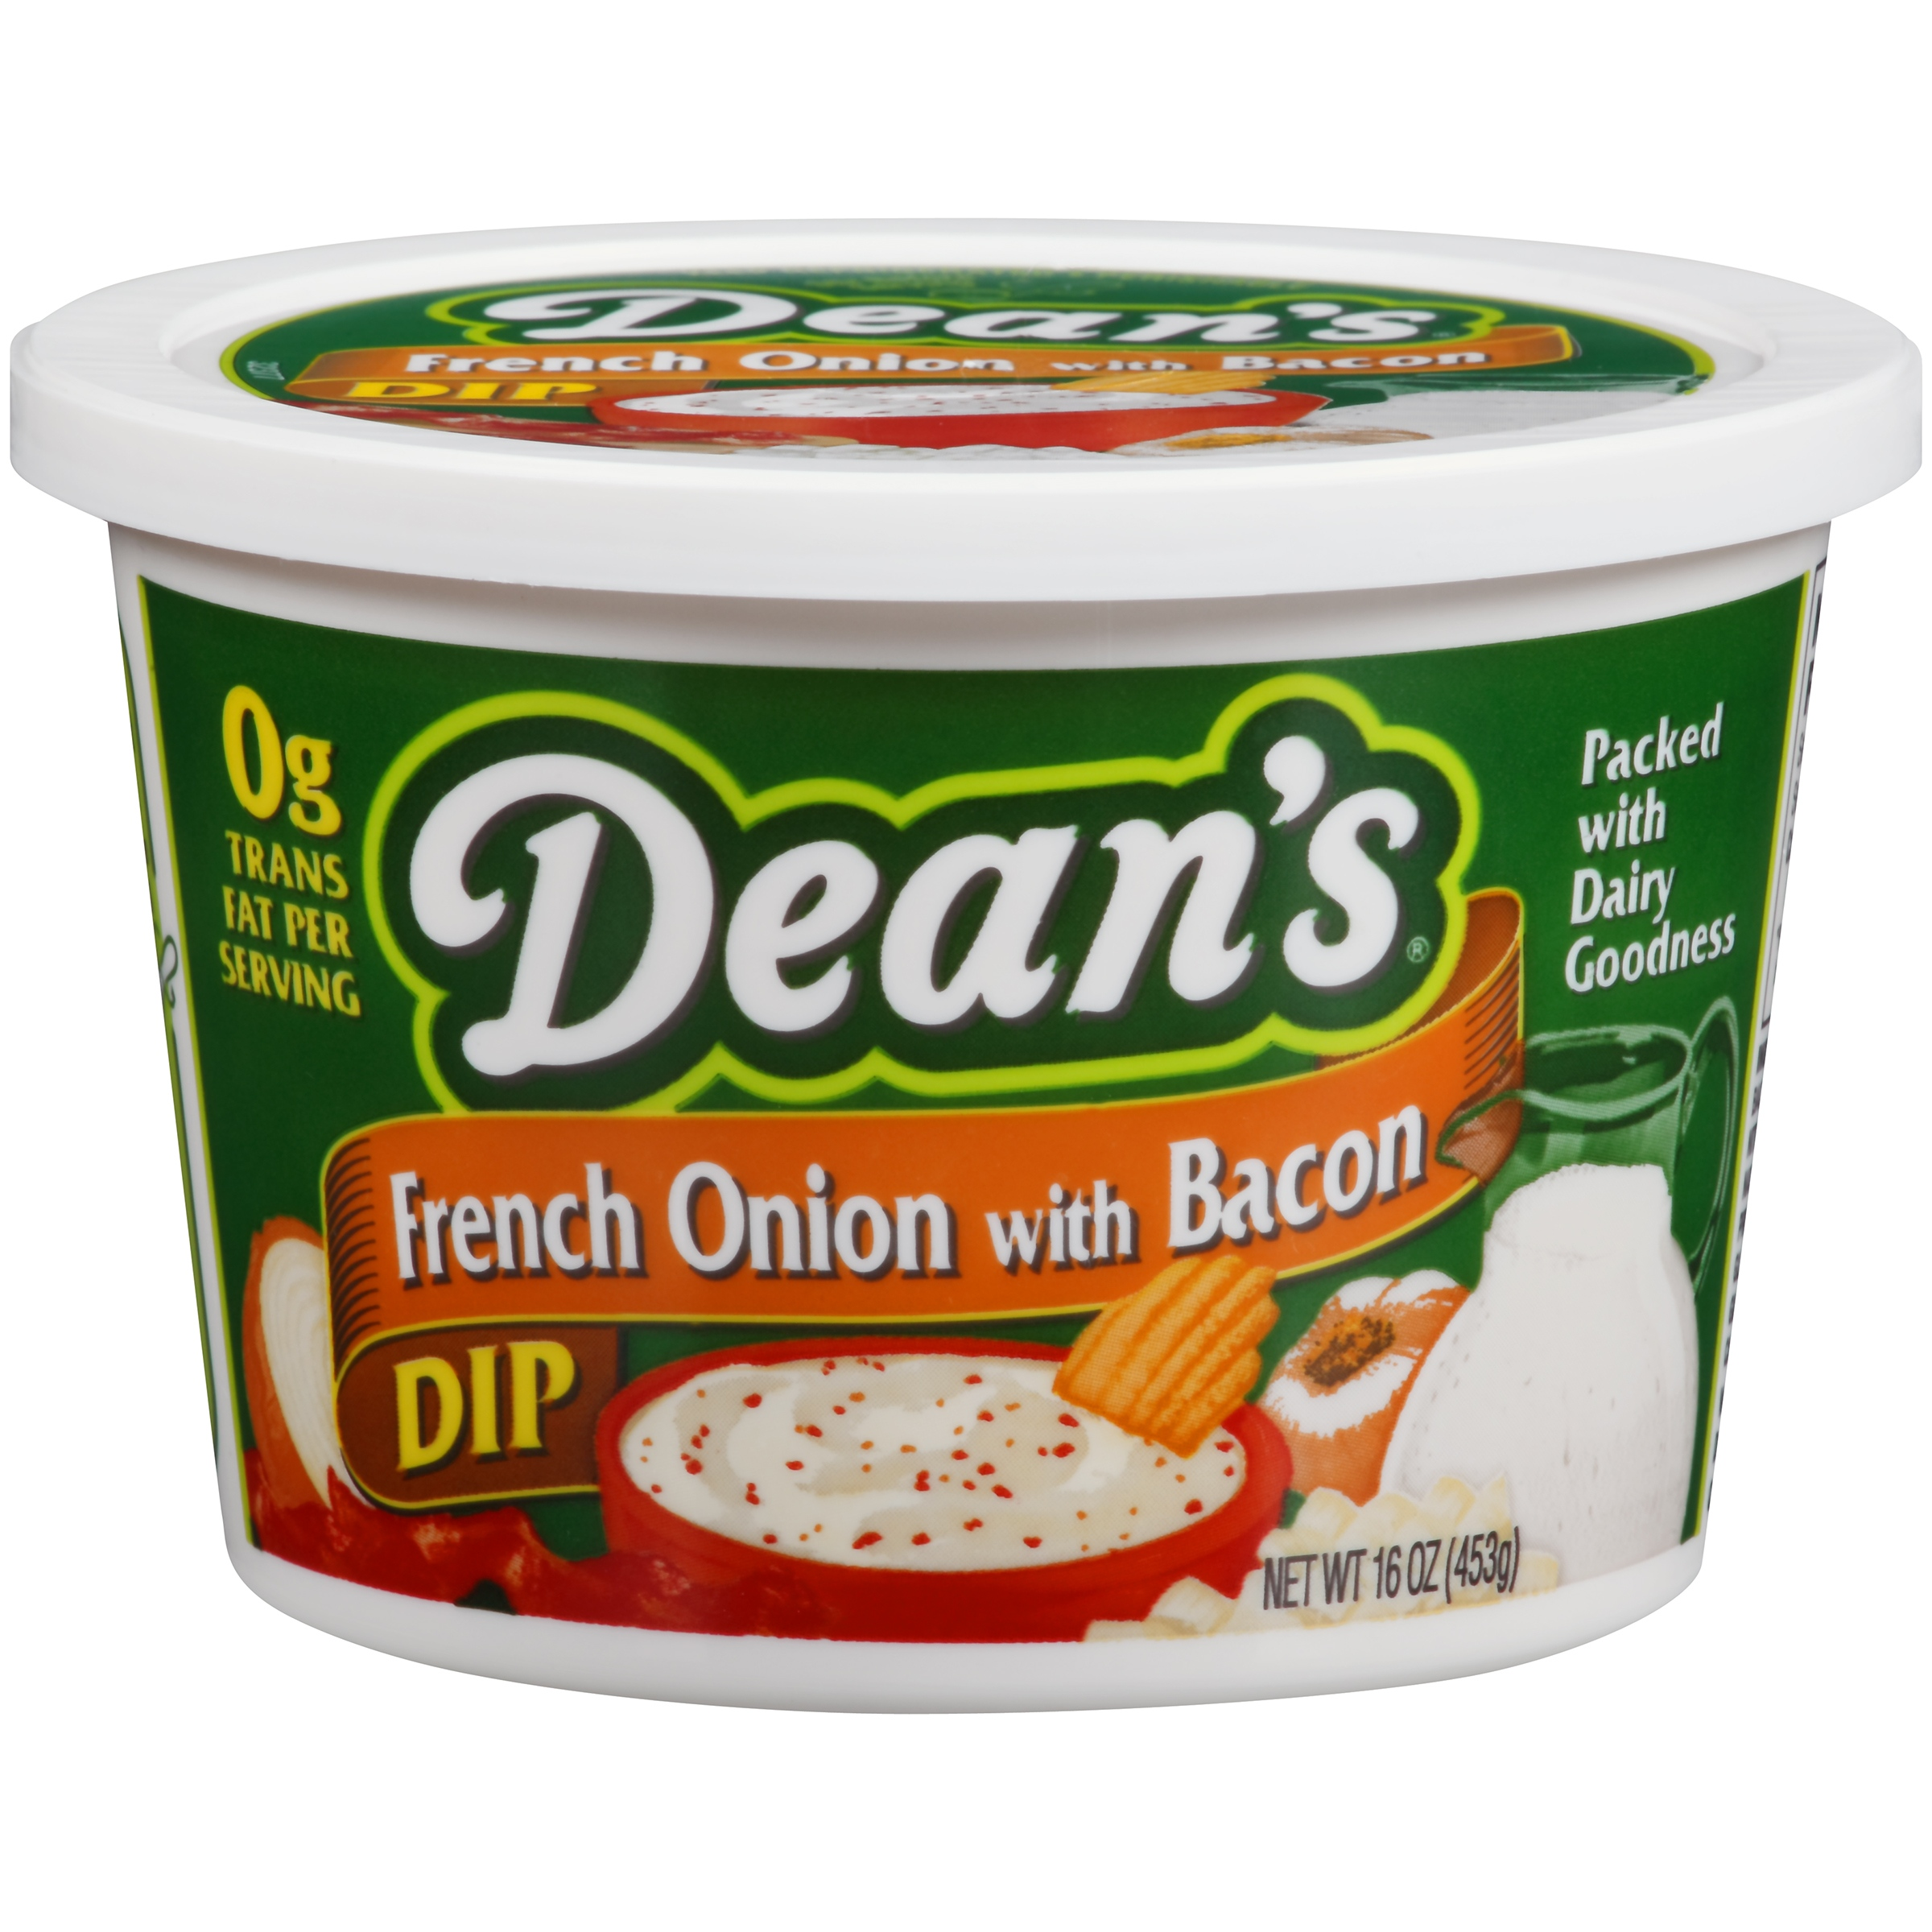 Dean's French Onion with Bacon Dip, 16 Oz.